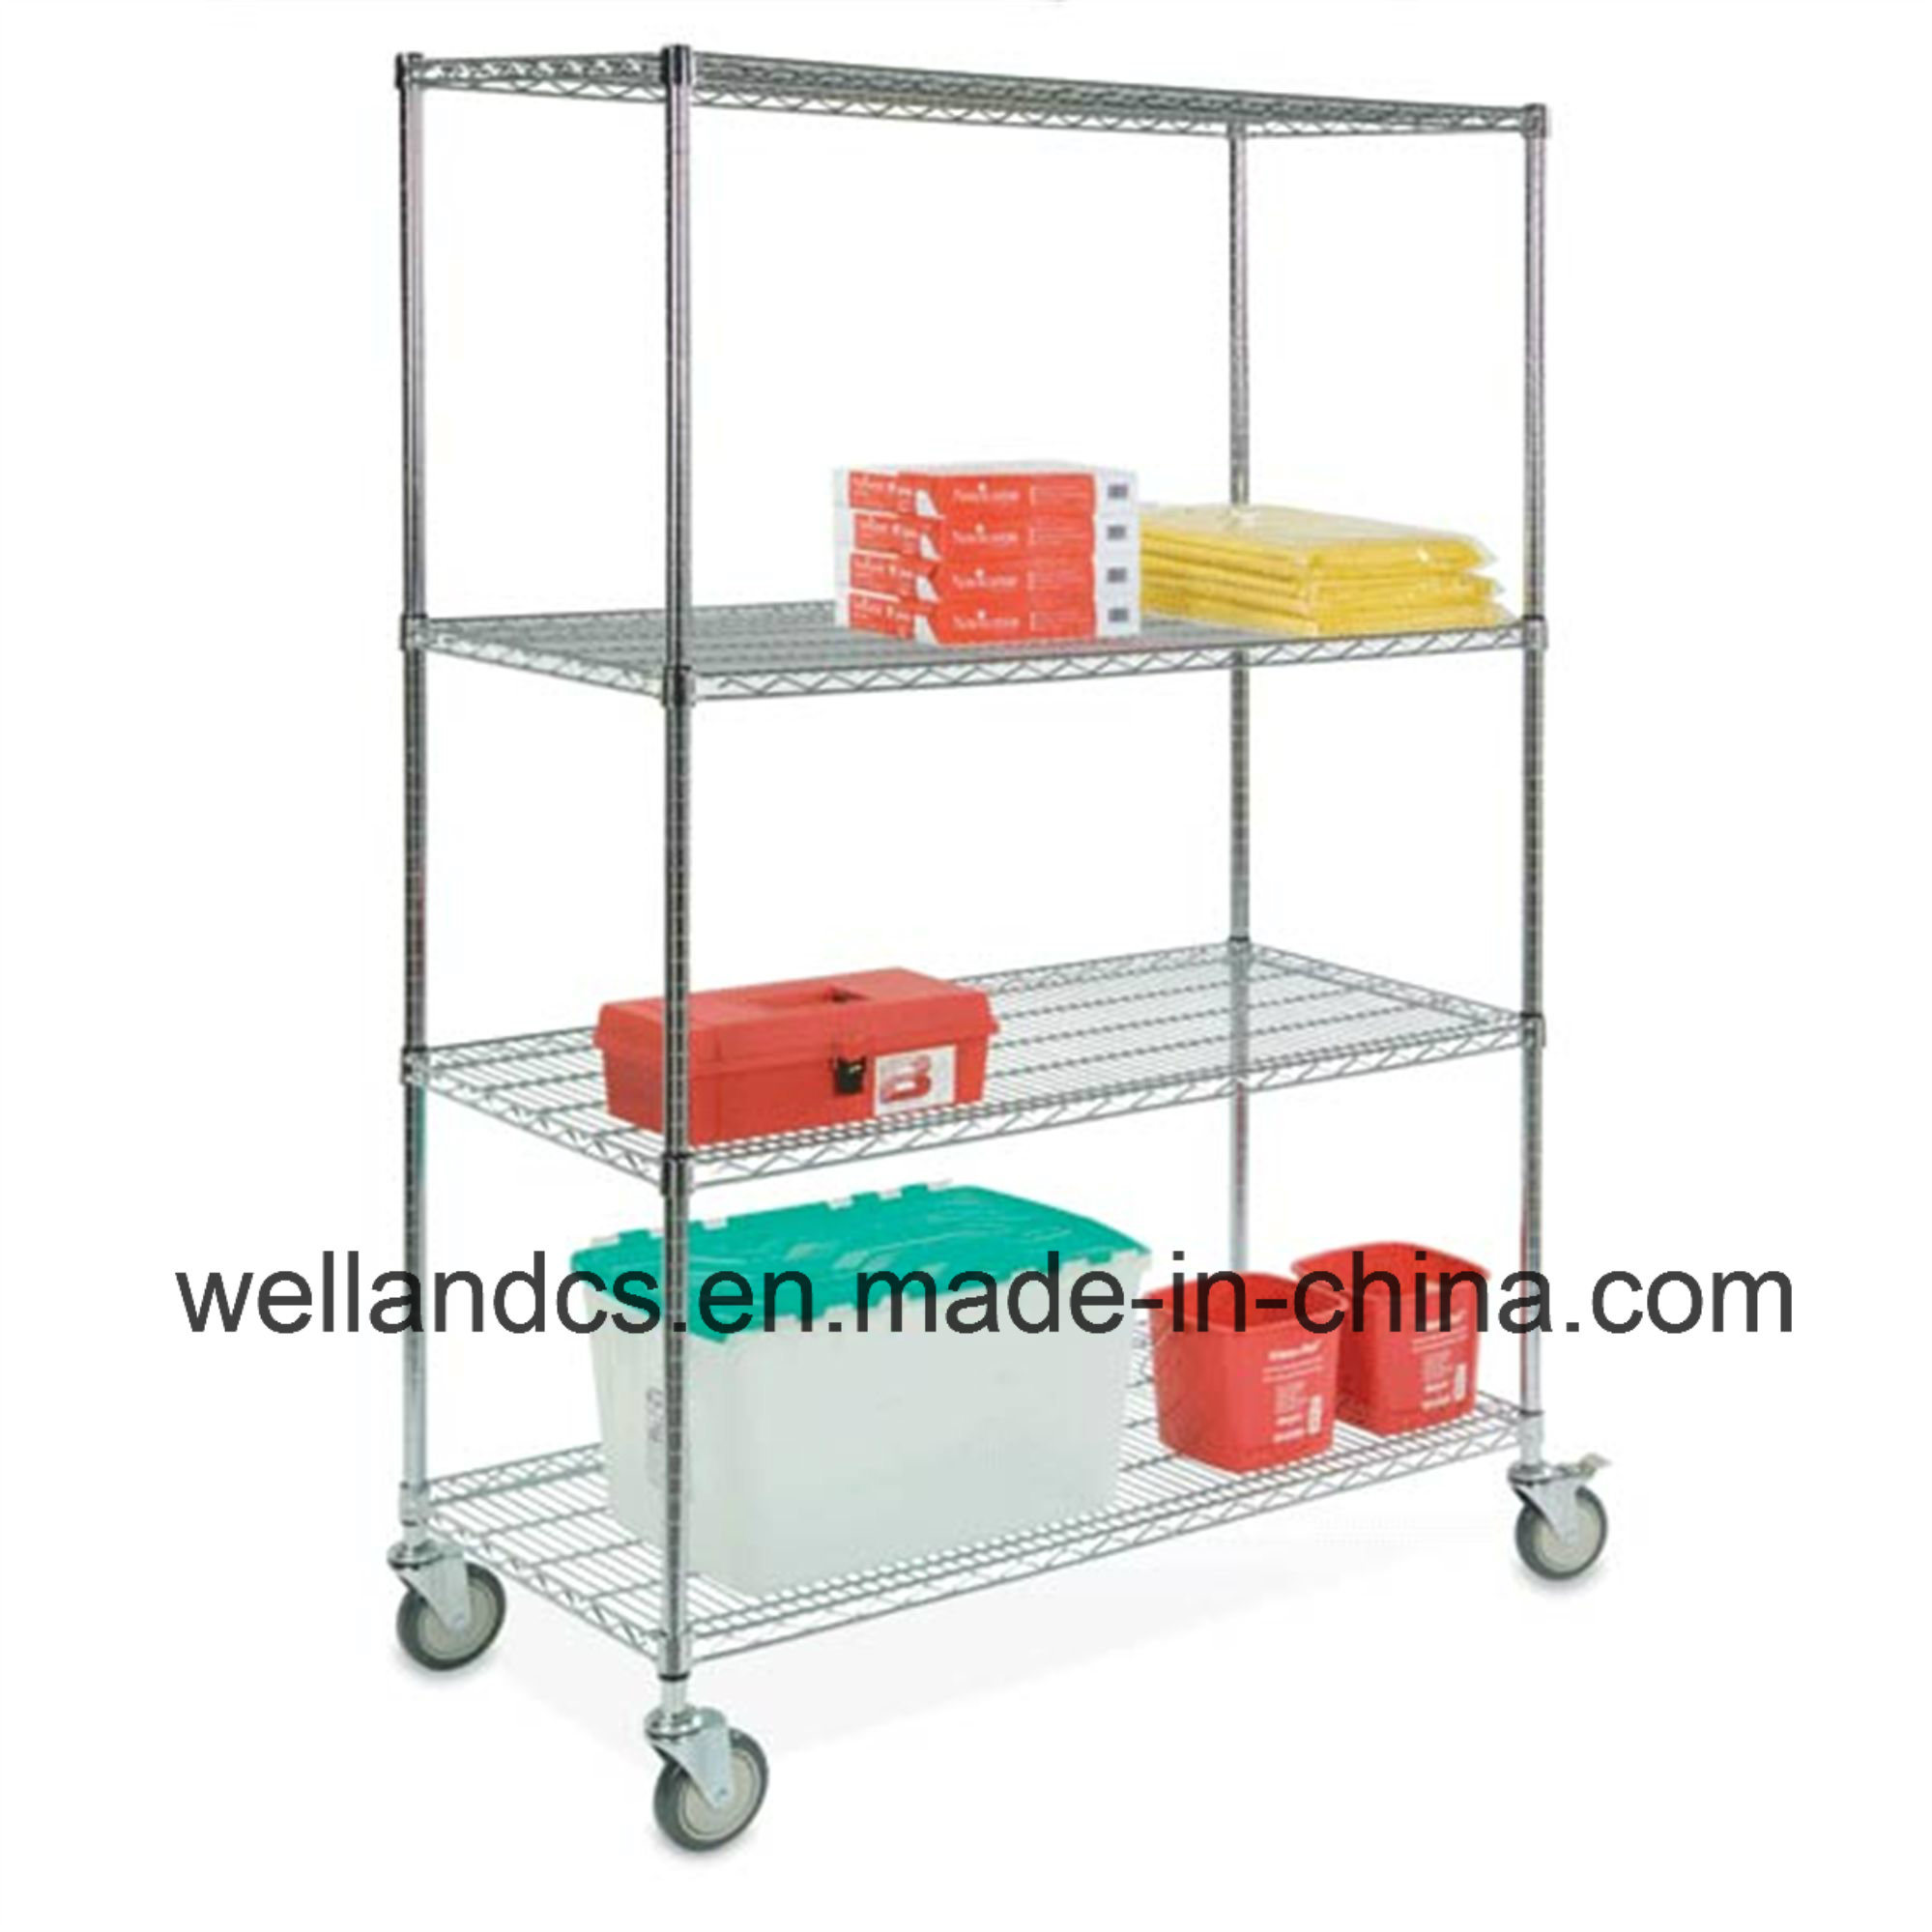 etagere metal adjustable